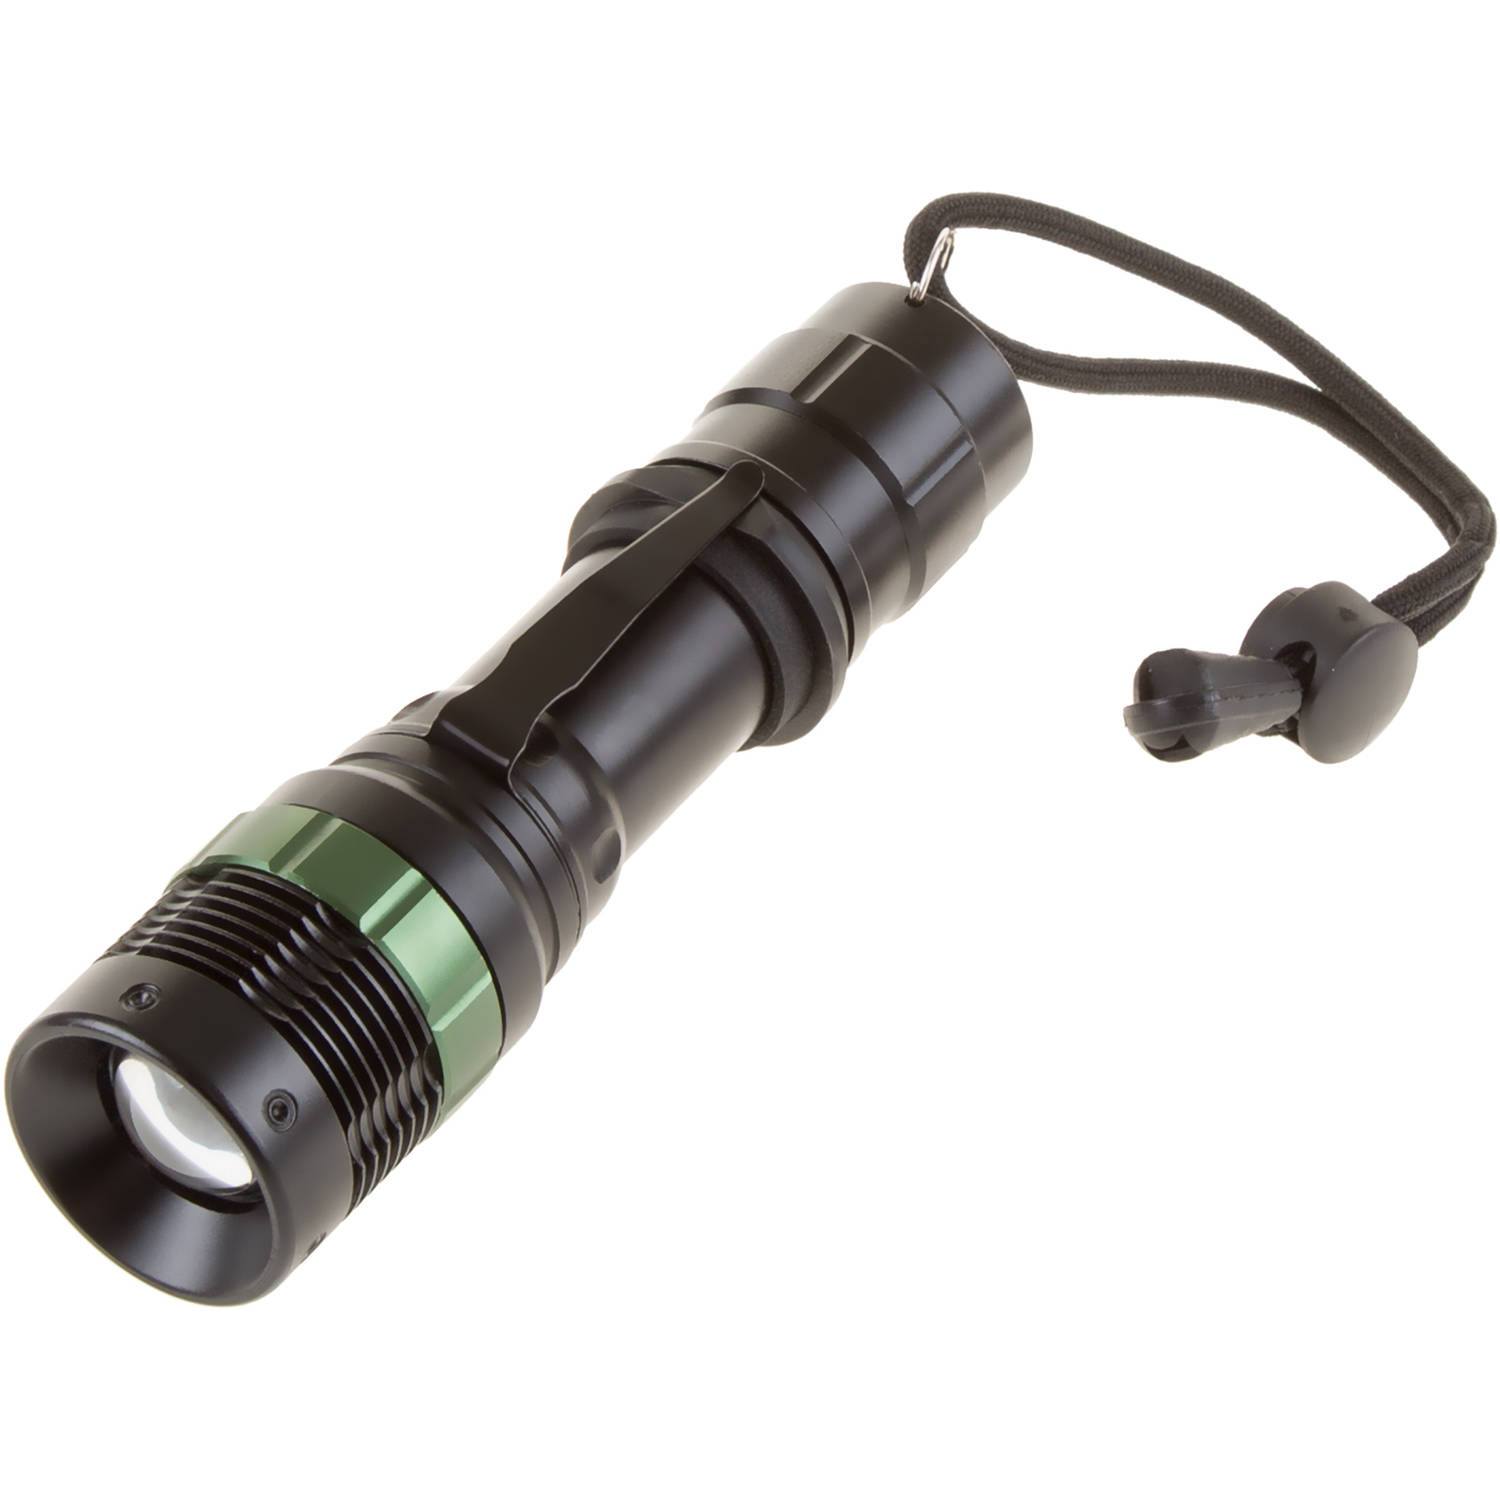 Stalwart 300 Lumen CREE LED Tactical Aluminum Flashlight, 3 Modes